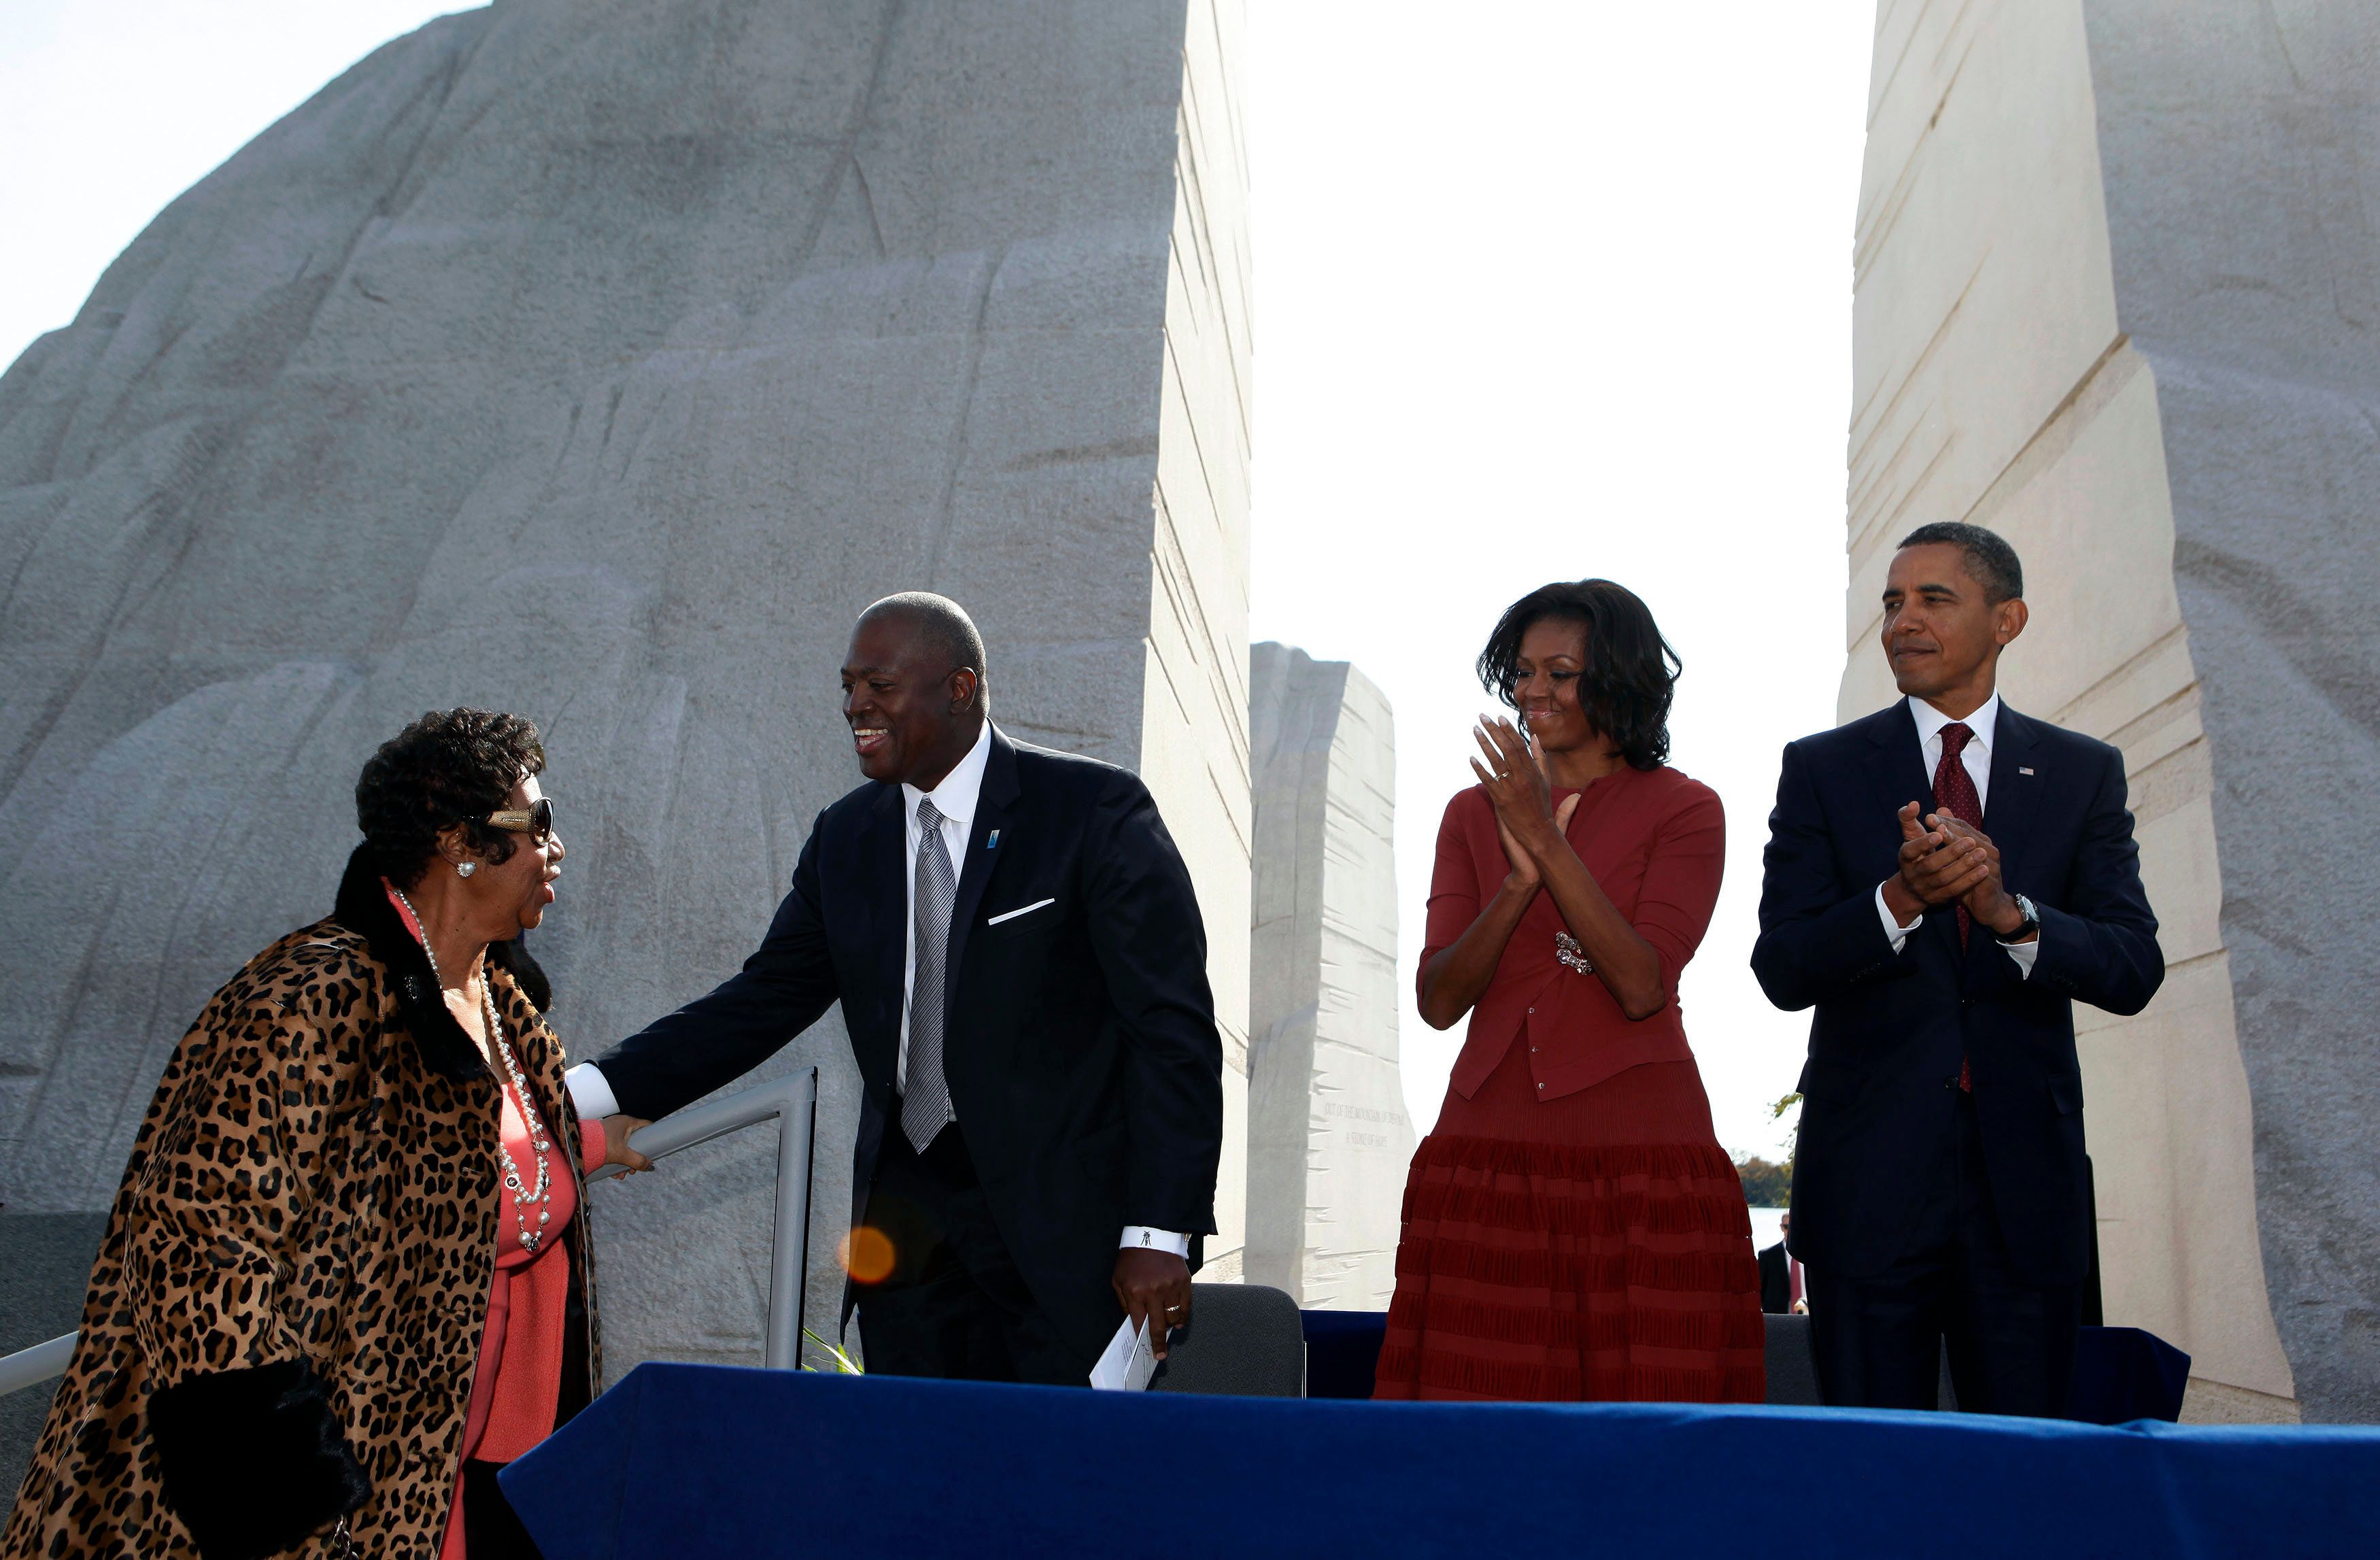 U.S. President Barack Obama (R) next to first lady Michelle Obama (2nd R) and CEO of the Martin Luther King, Jr. National Memorial Foundation Harry E. Johnson (2nd L) welcome singer Aretha Franklin (L) on stage before she sings at the dedication ceremony of the Martin Luther King, Jr. Memorial in West Potomac Park in Washington, October 16, 2011.         REUTERS/Larry Downing     (UNITED STATES - Tags: POLITICS ENTERTAINMENT)